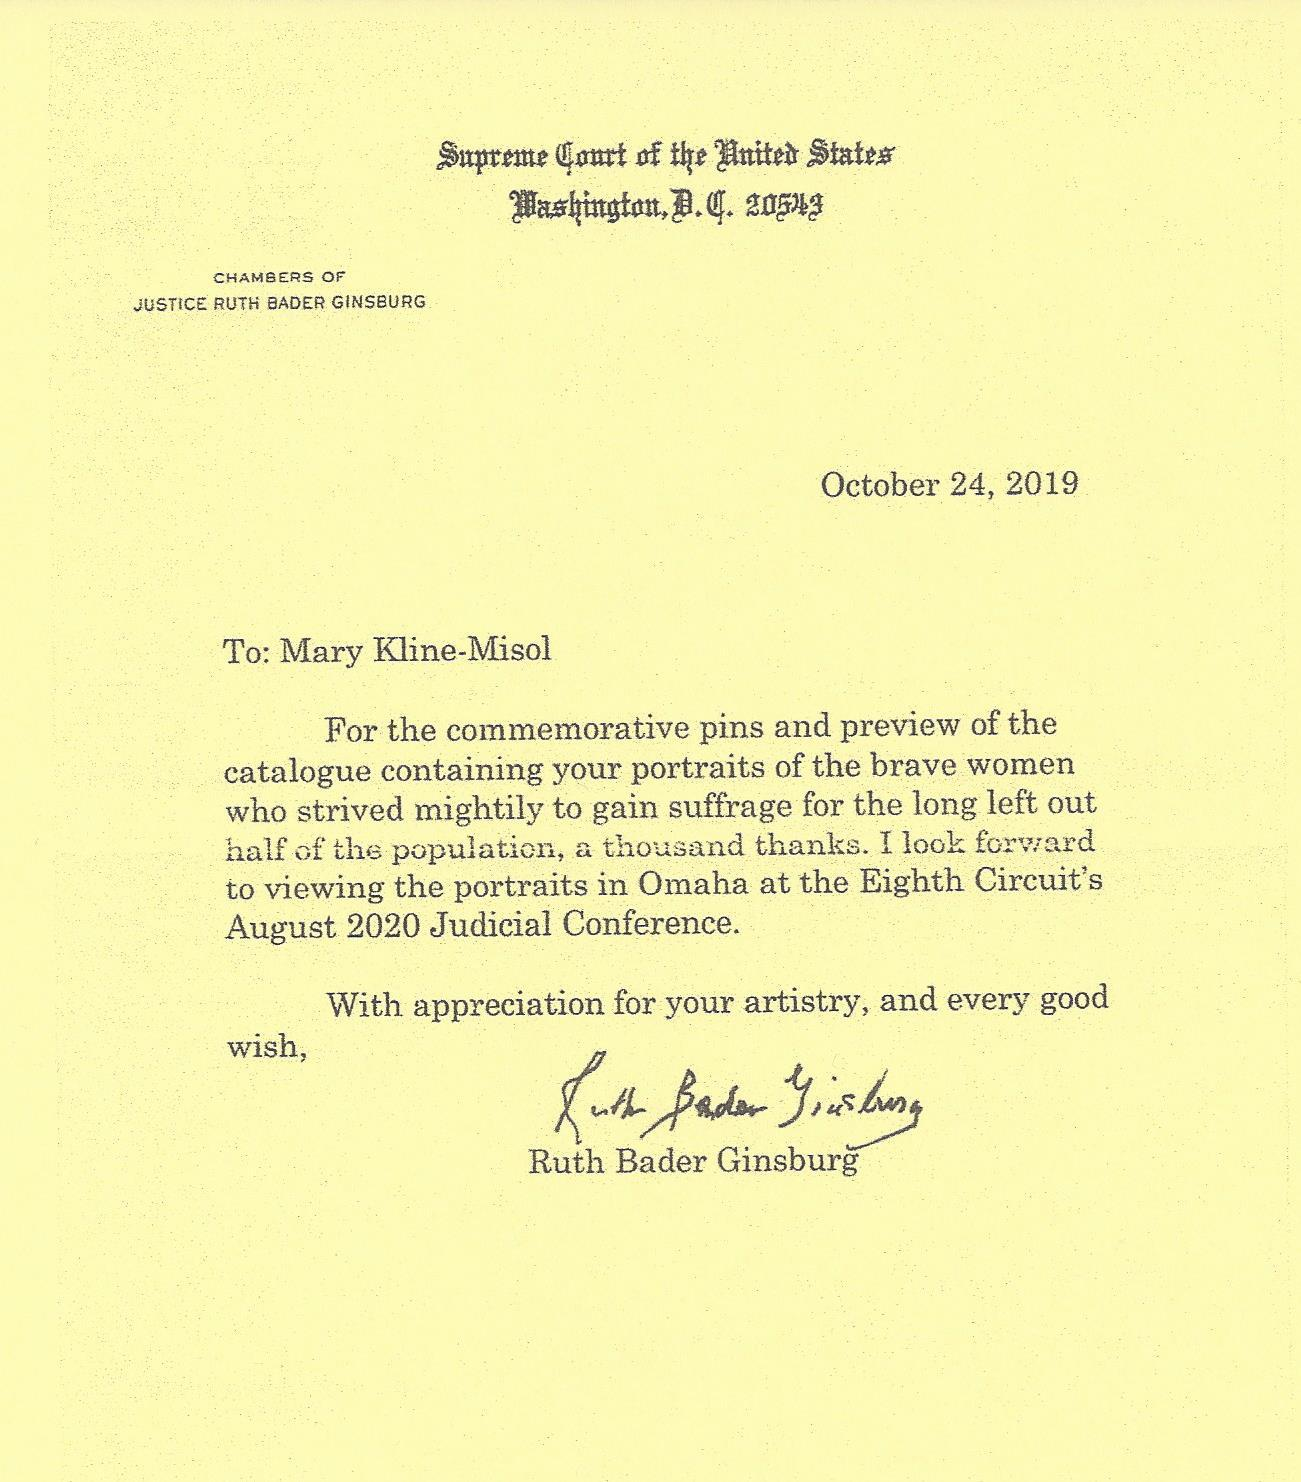 Thank you letter from Justice Ruth Bader Ginsberg